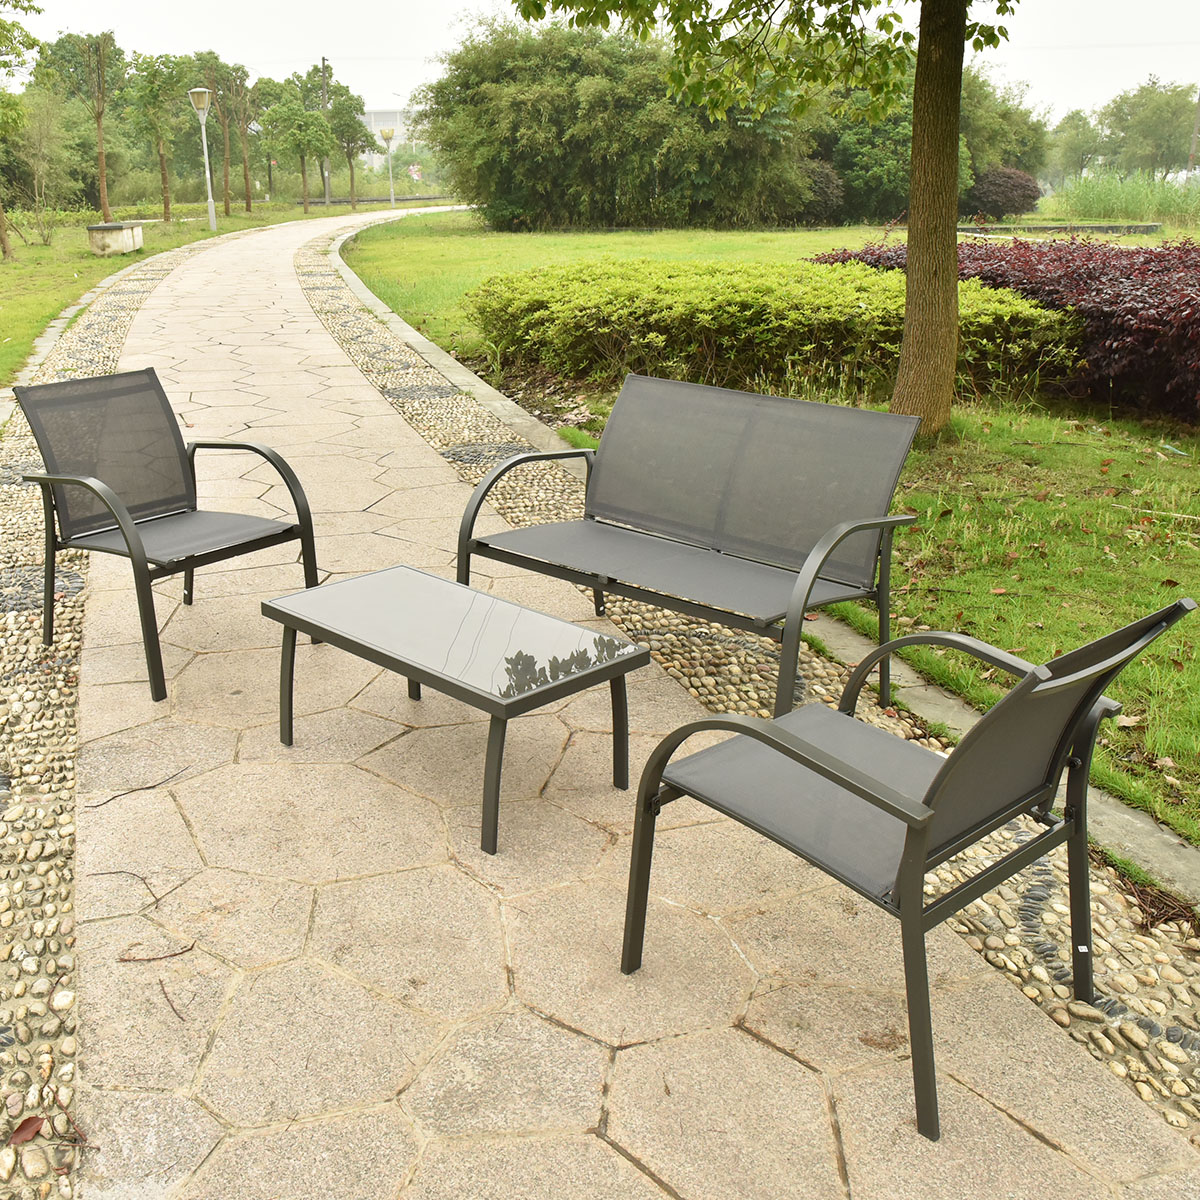 Garden Furniture Steel costway 4pcs patio garden furniture set steel frame outdoor lawn